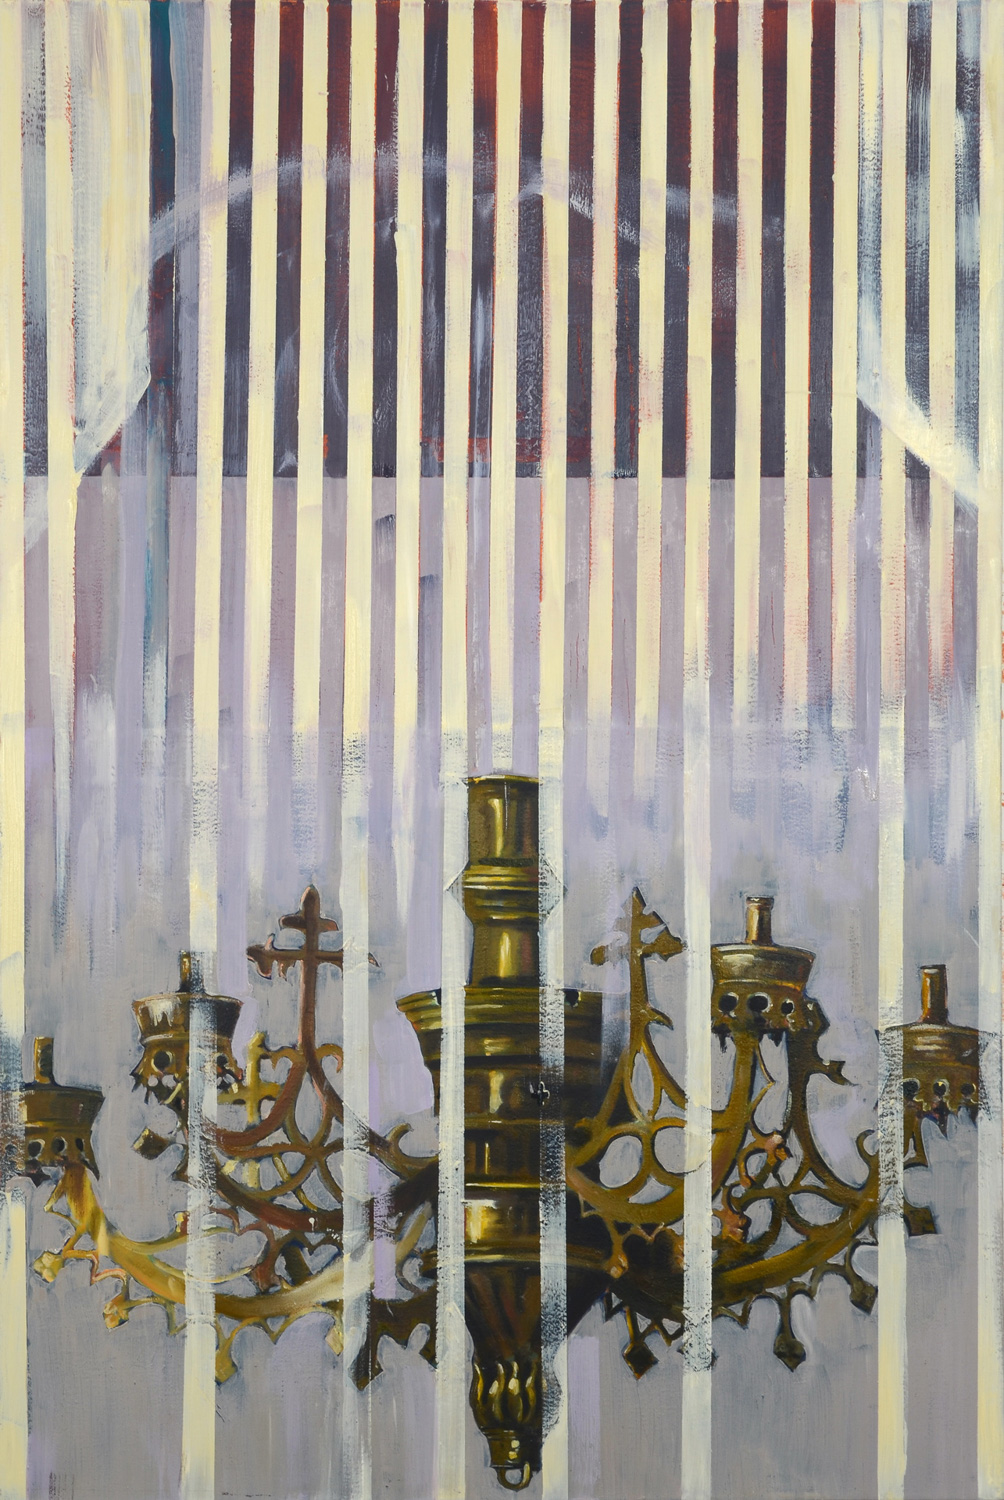 Chandelier I, Oil on canvas, 160x100 cm, 2012